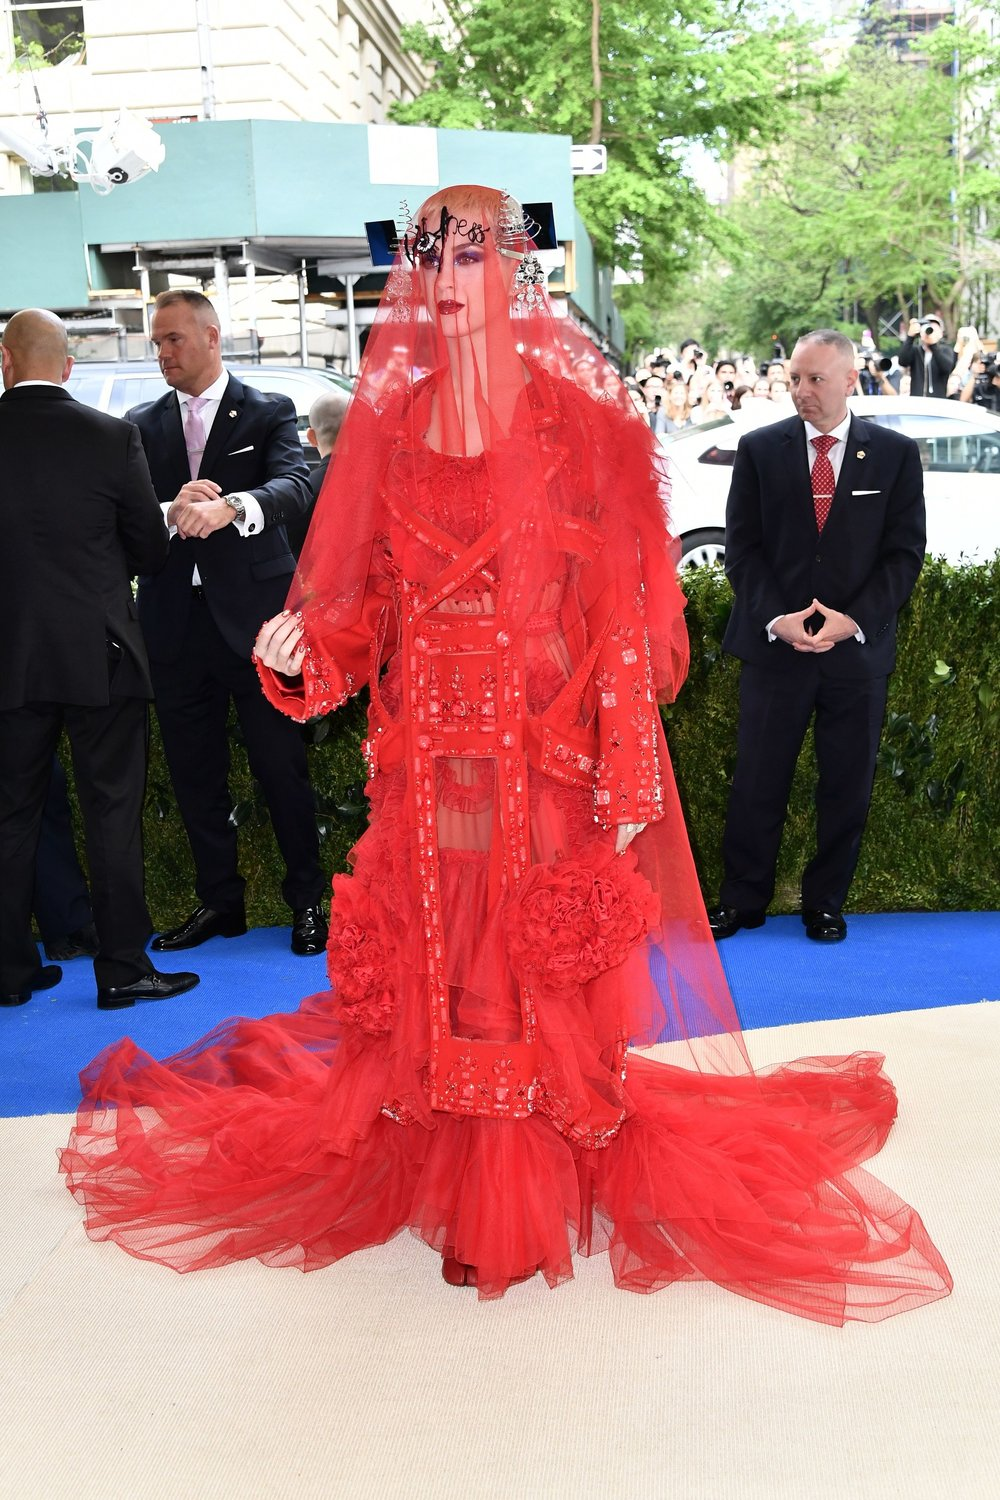 Katy Perry in Maison Margiela (This is very different)